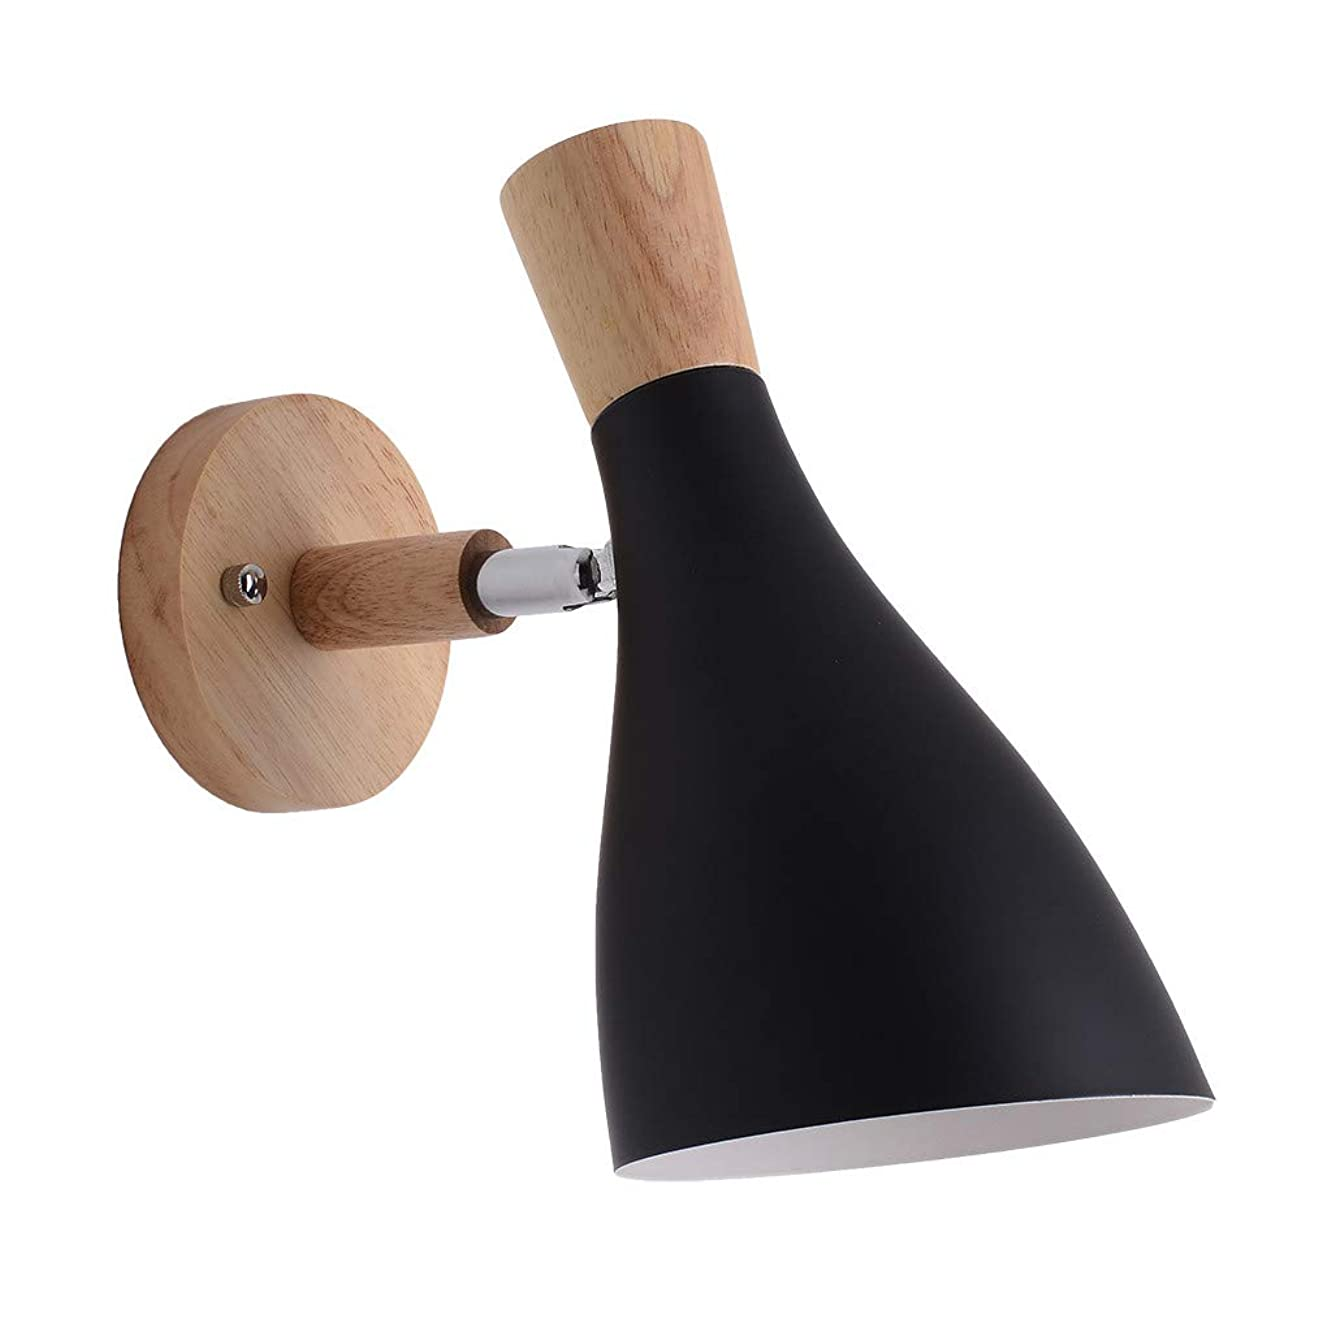 NszzJixo9 Creative Wall Lamp Swing Head Sconce Light Bedroom Lighting Bedside Reading Lamp Iron Art Sucking Disc Iron Craft and Wood Pattern are More Natural (Black,)